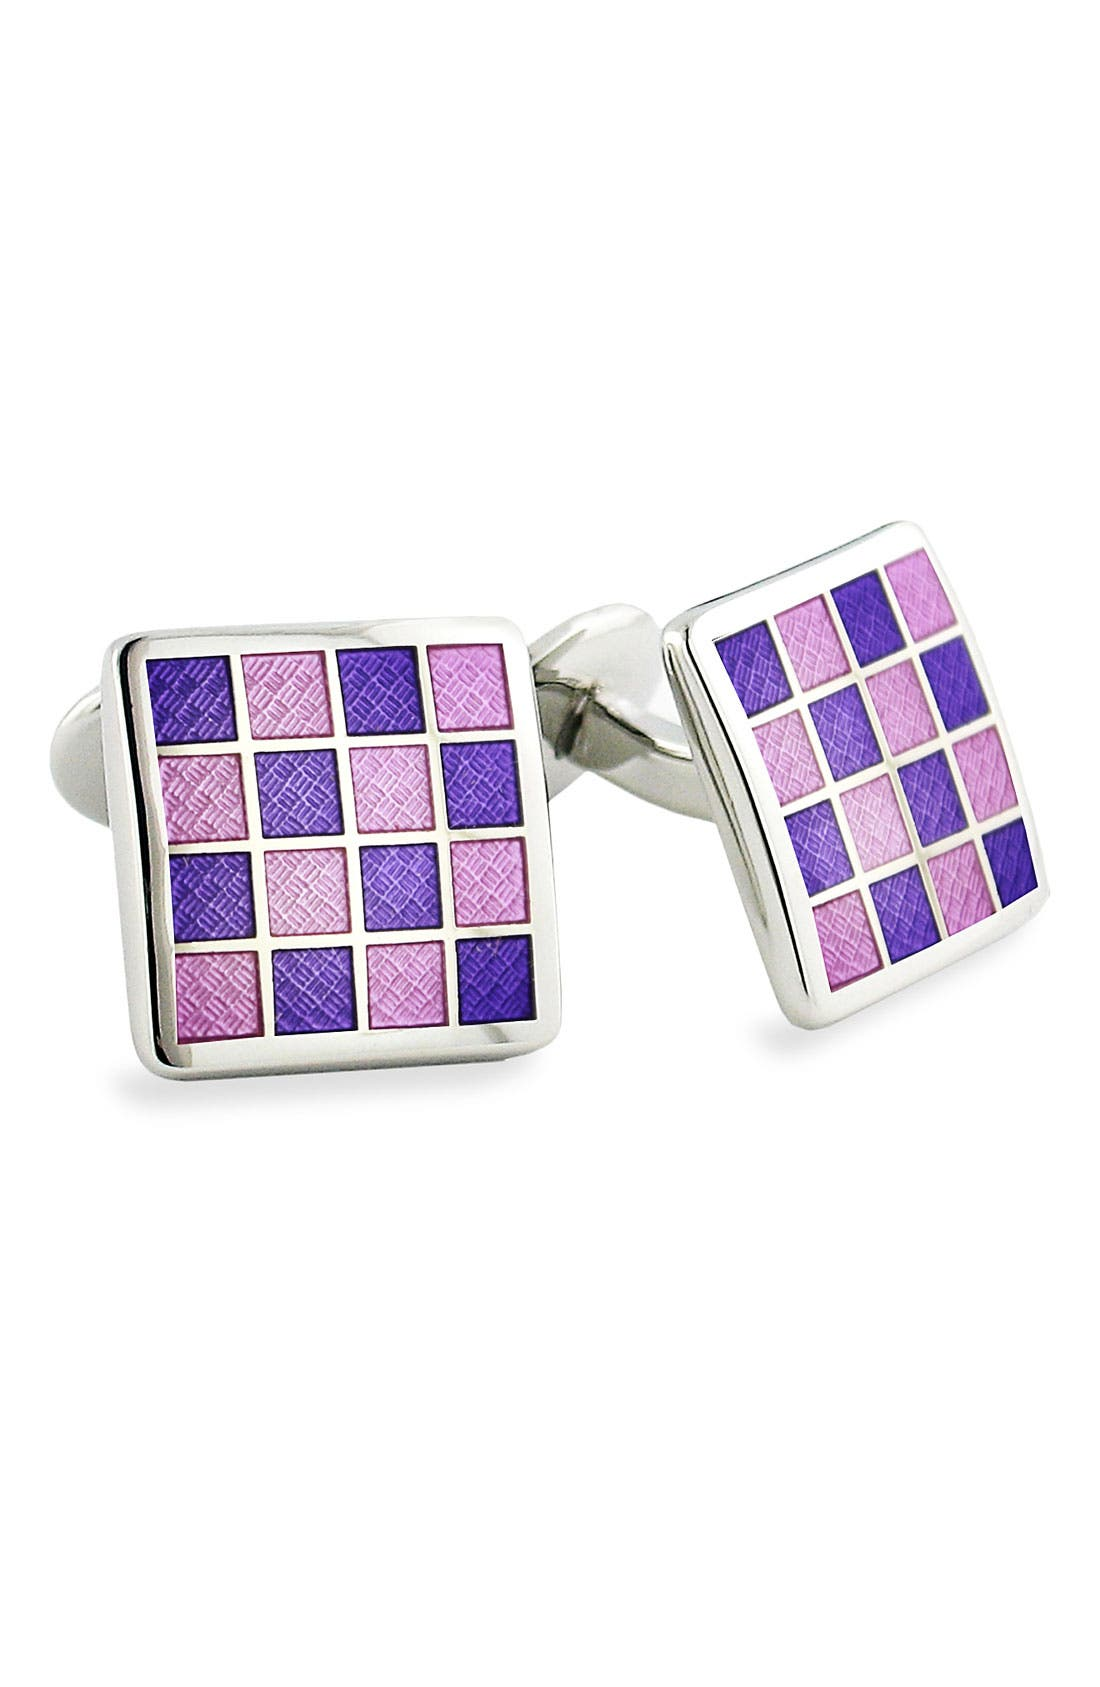 DAVID DONAHUE Enamel Check Cuff Links